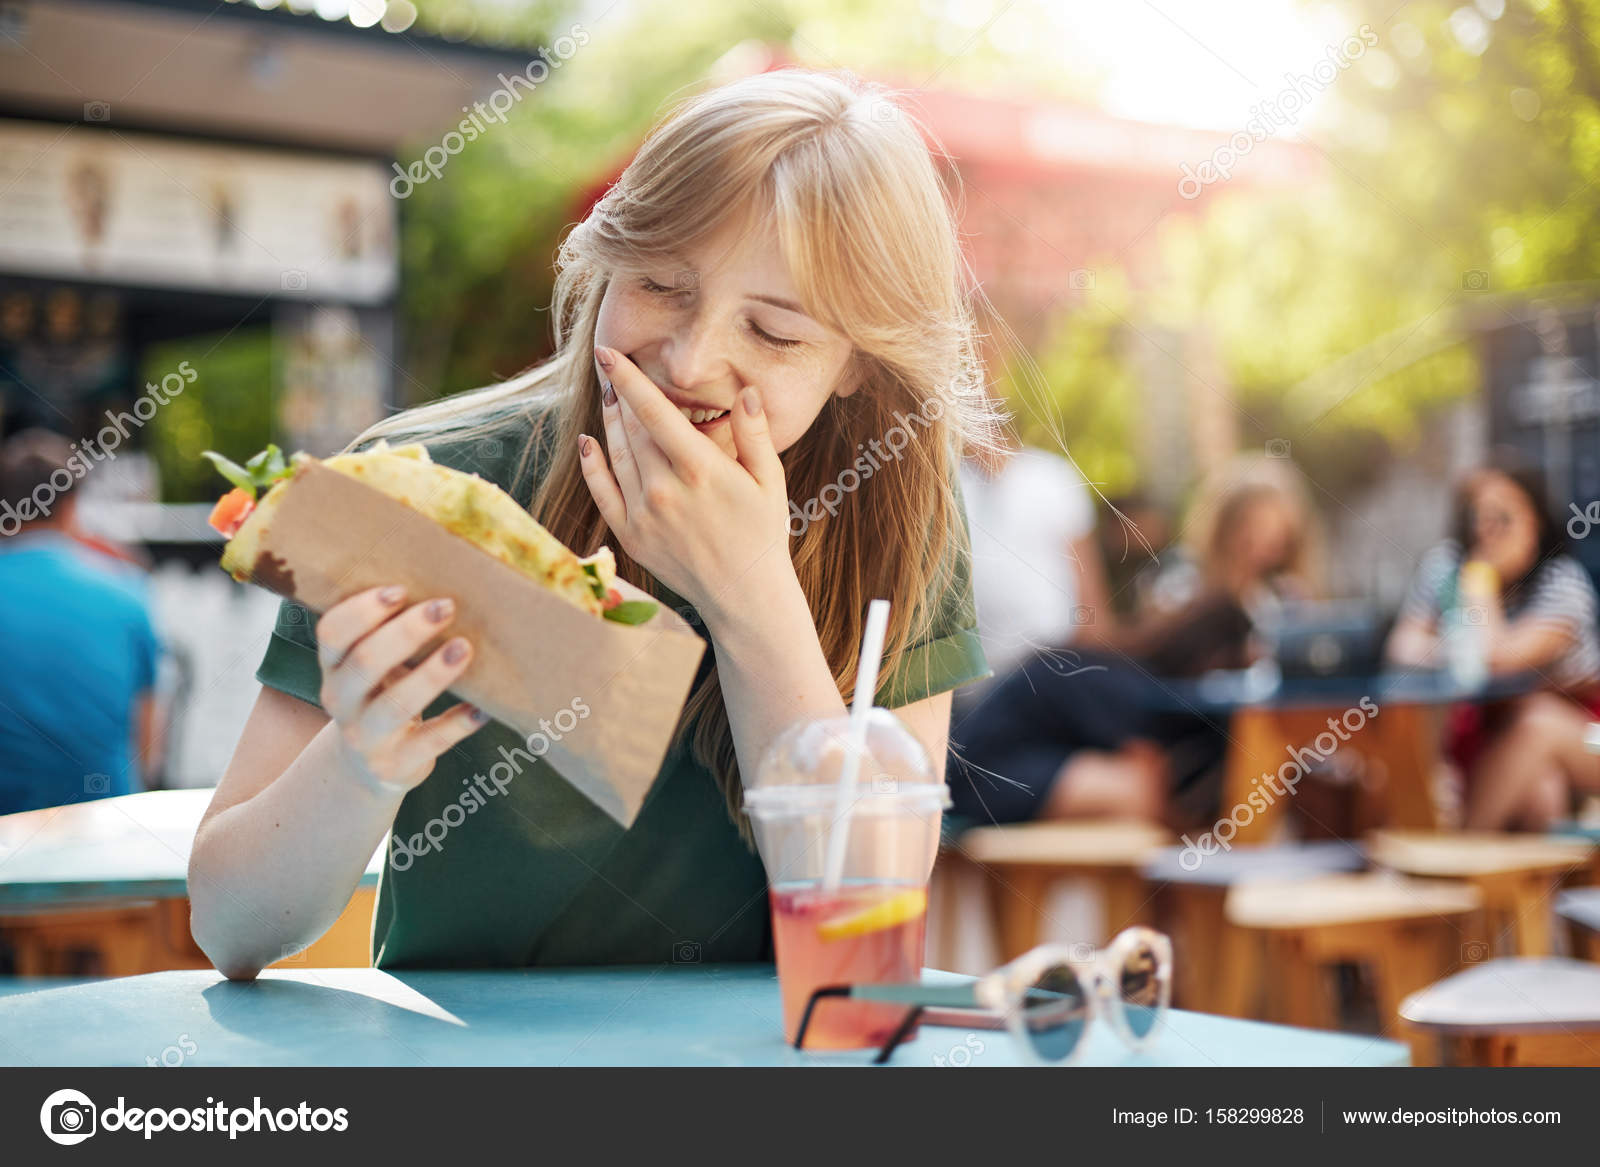 girl eating taco smiling hungry freckled blonde woman eating junk